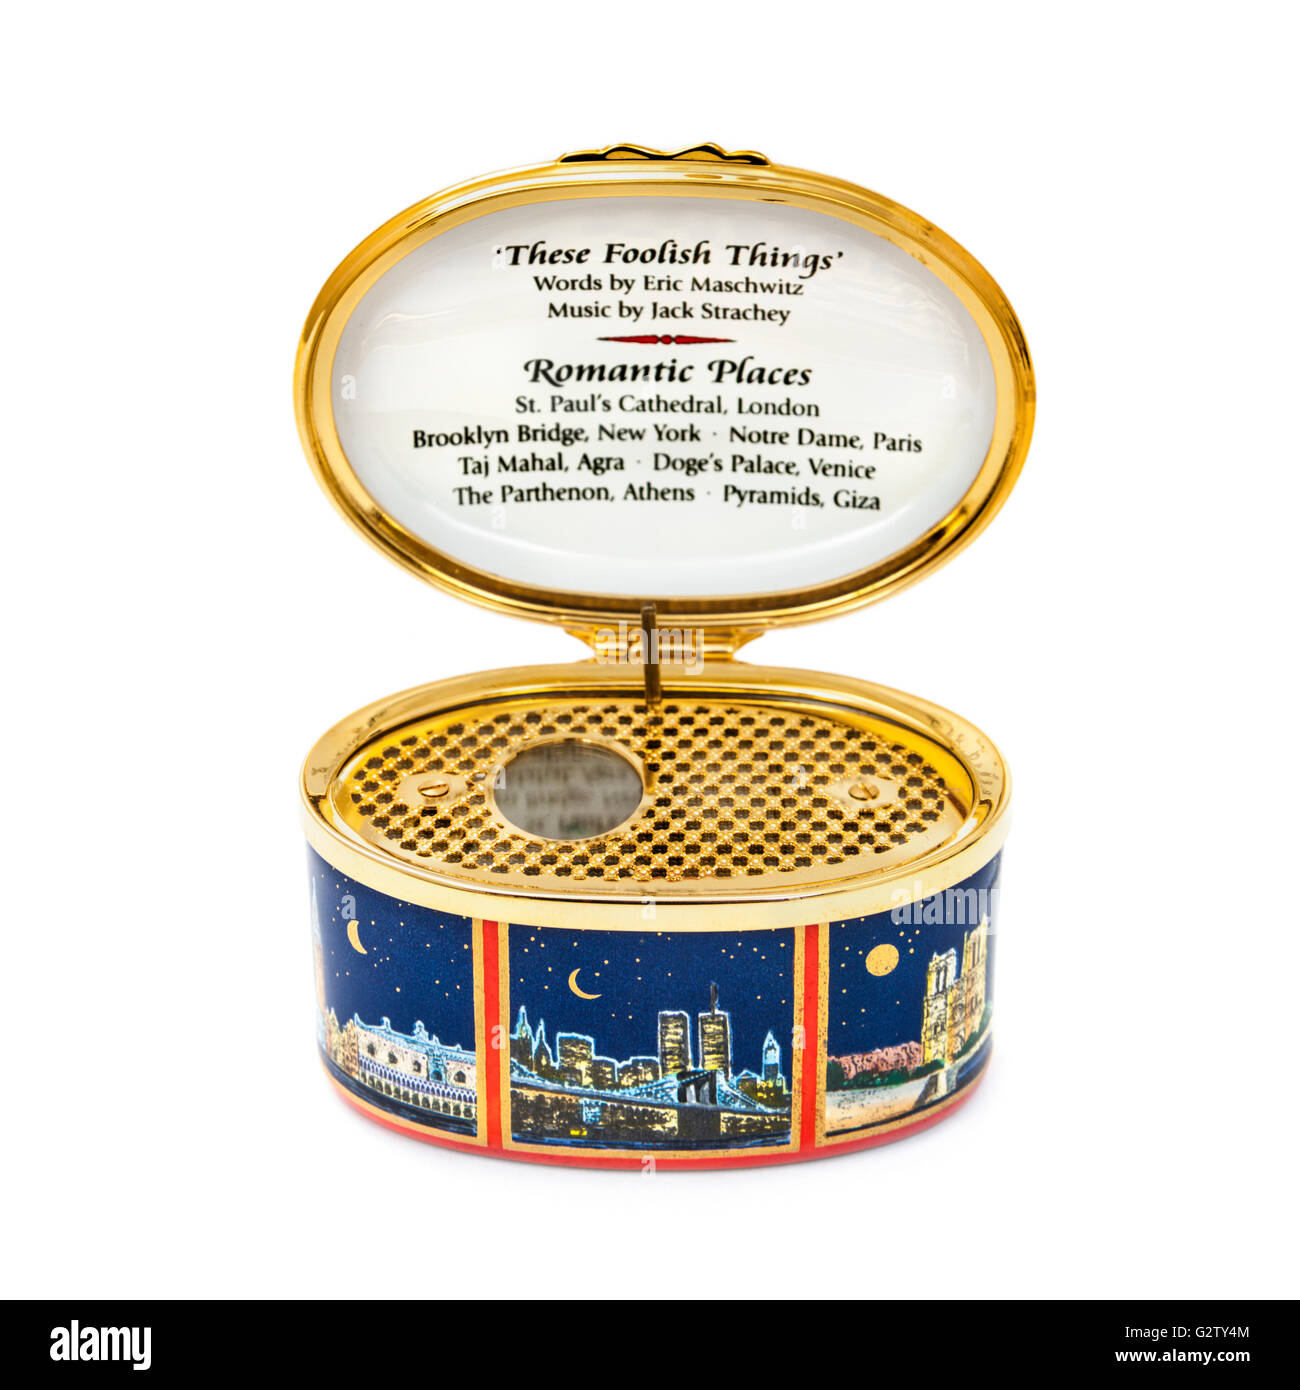 Halcyon Days Enamels music box. Plays 'These Foolish Things' by Eric Maschwitz. - Stock Image